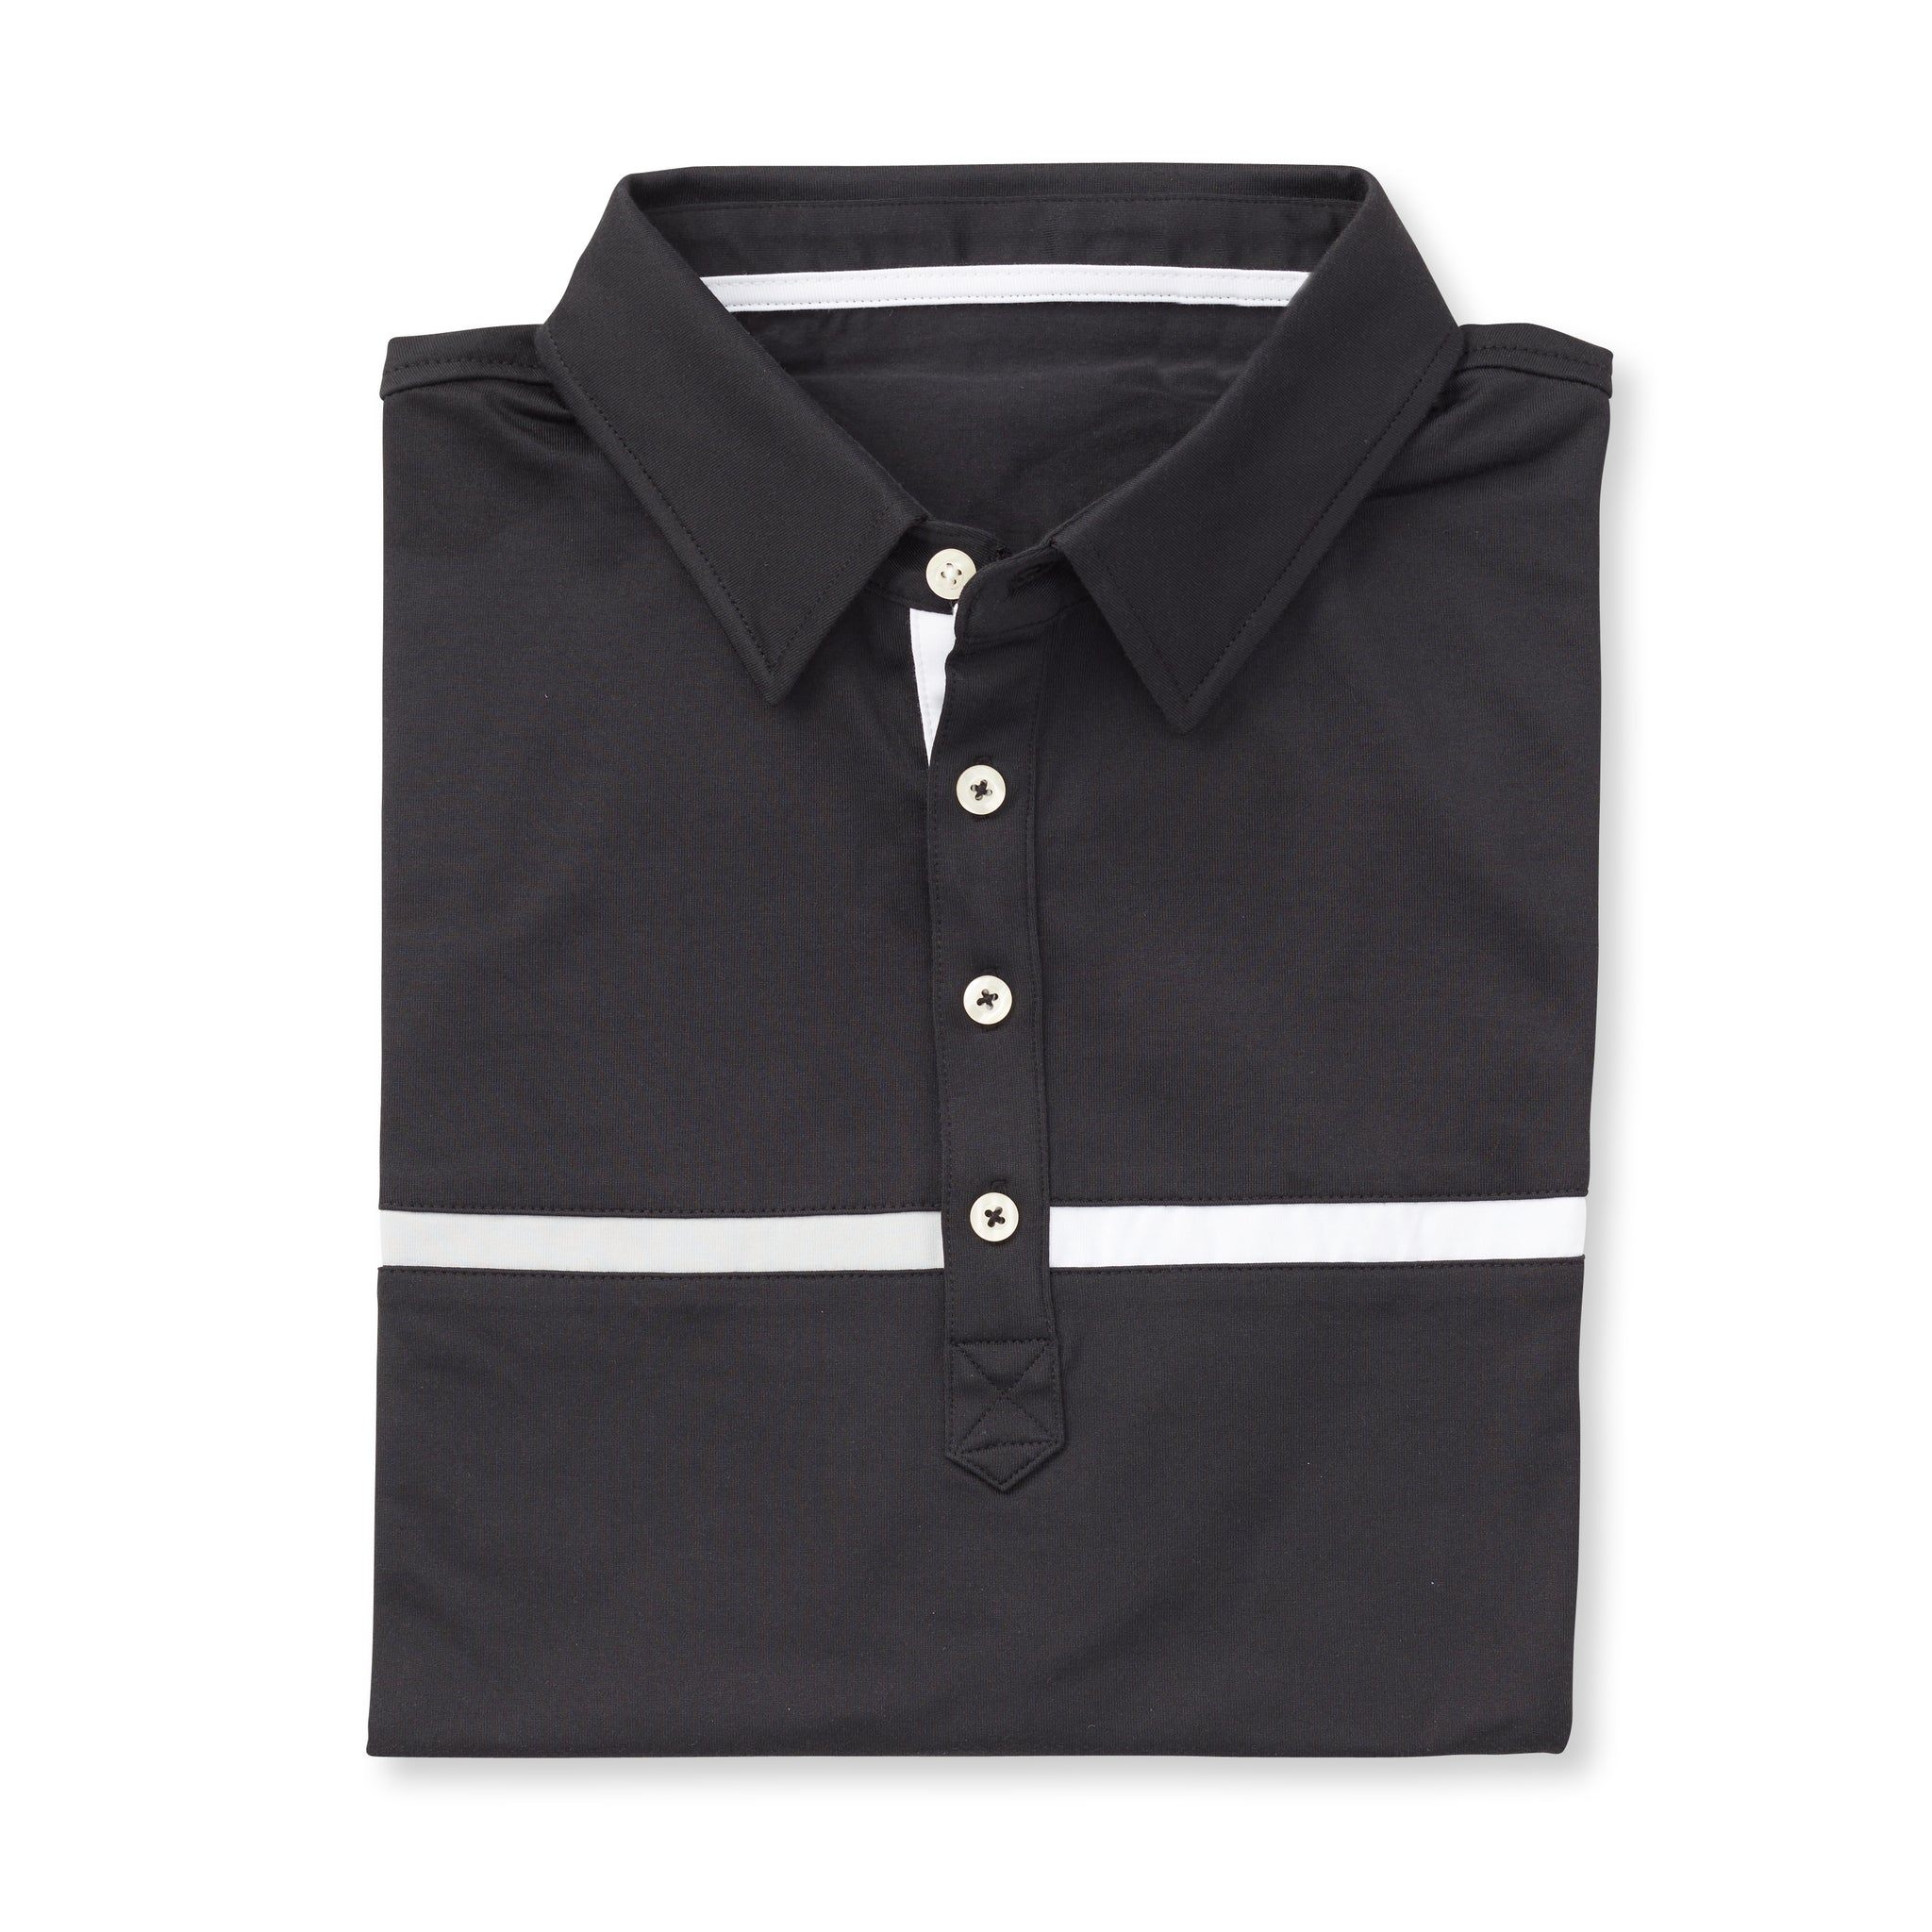 LUXTEC Champions Color Block Short Sleeve Polo - Black IS72420